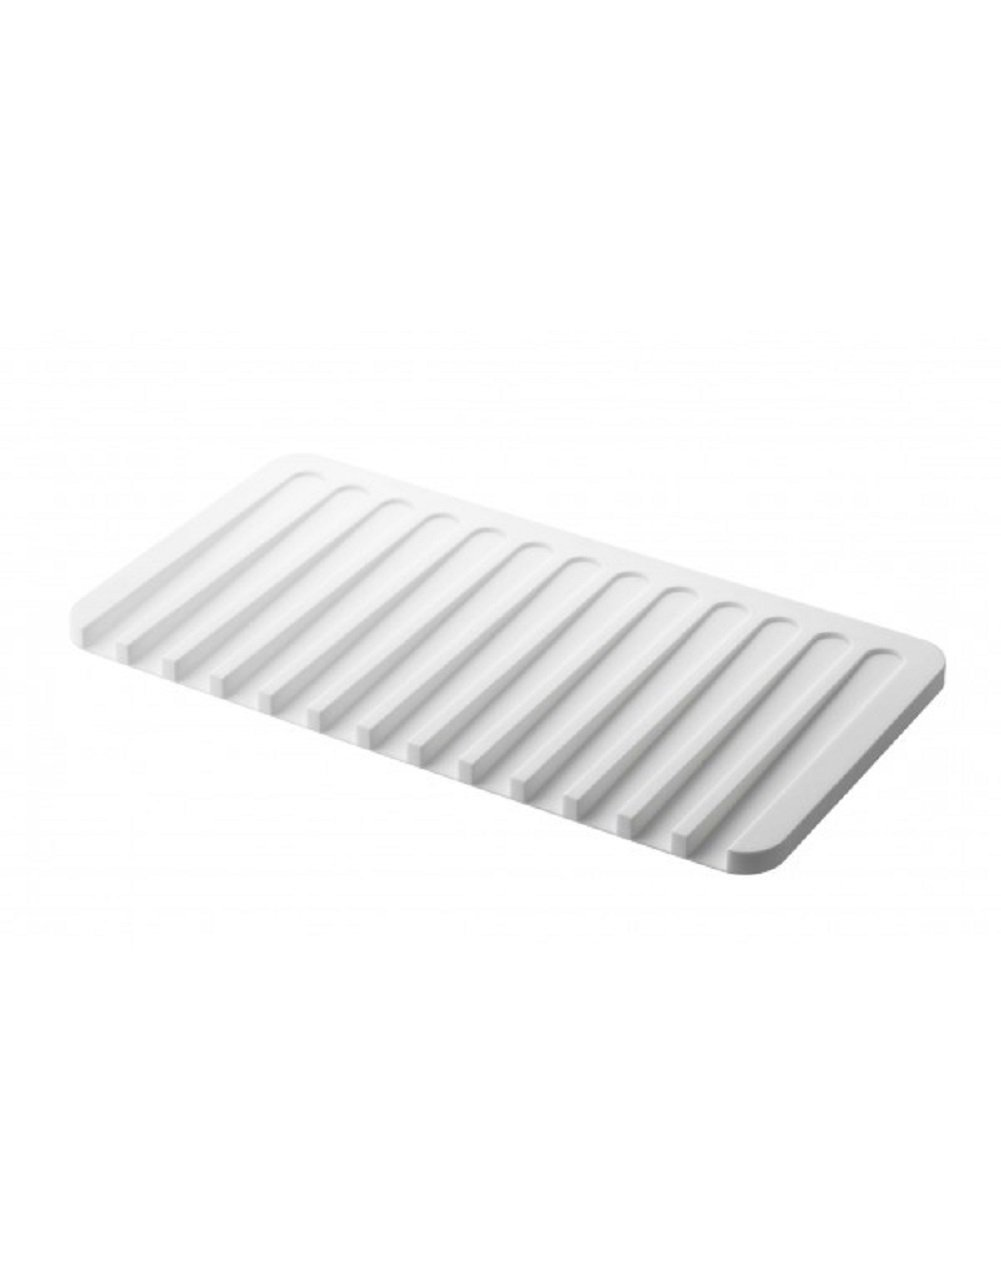 YAMAZAKI home 7395 Flow Soap Tray-Silicone Holder Dish for Sink, White